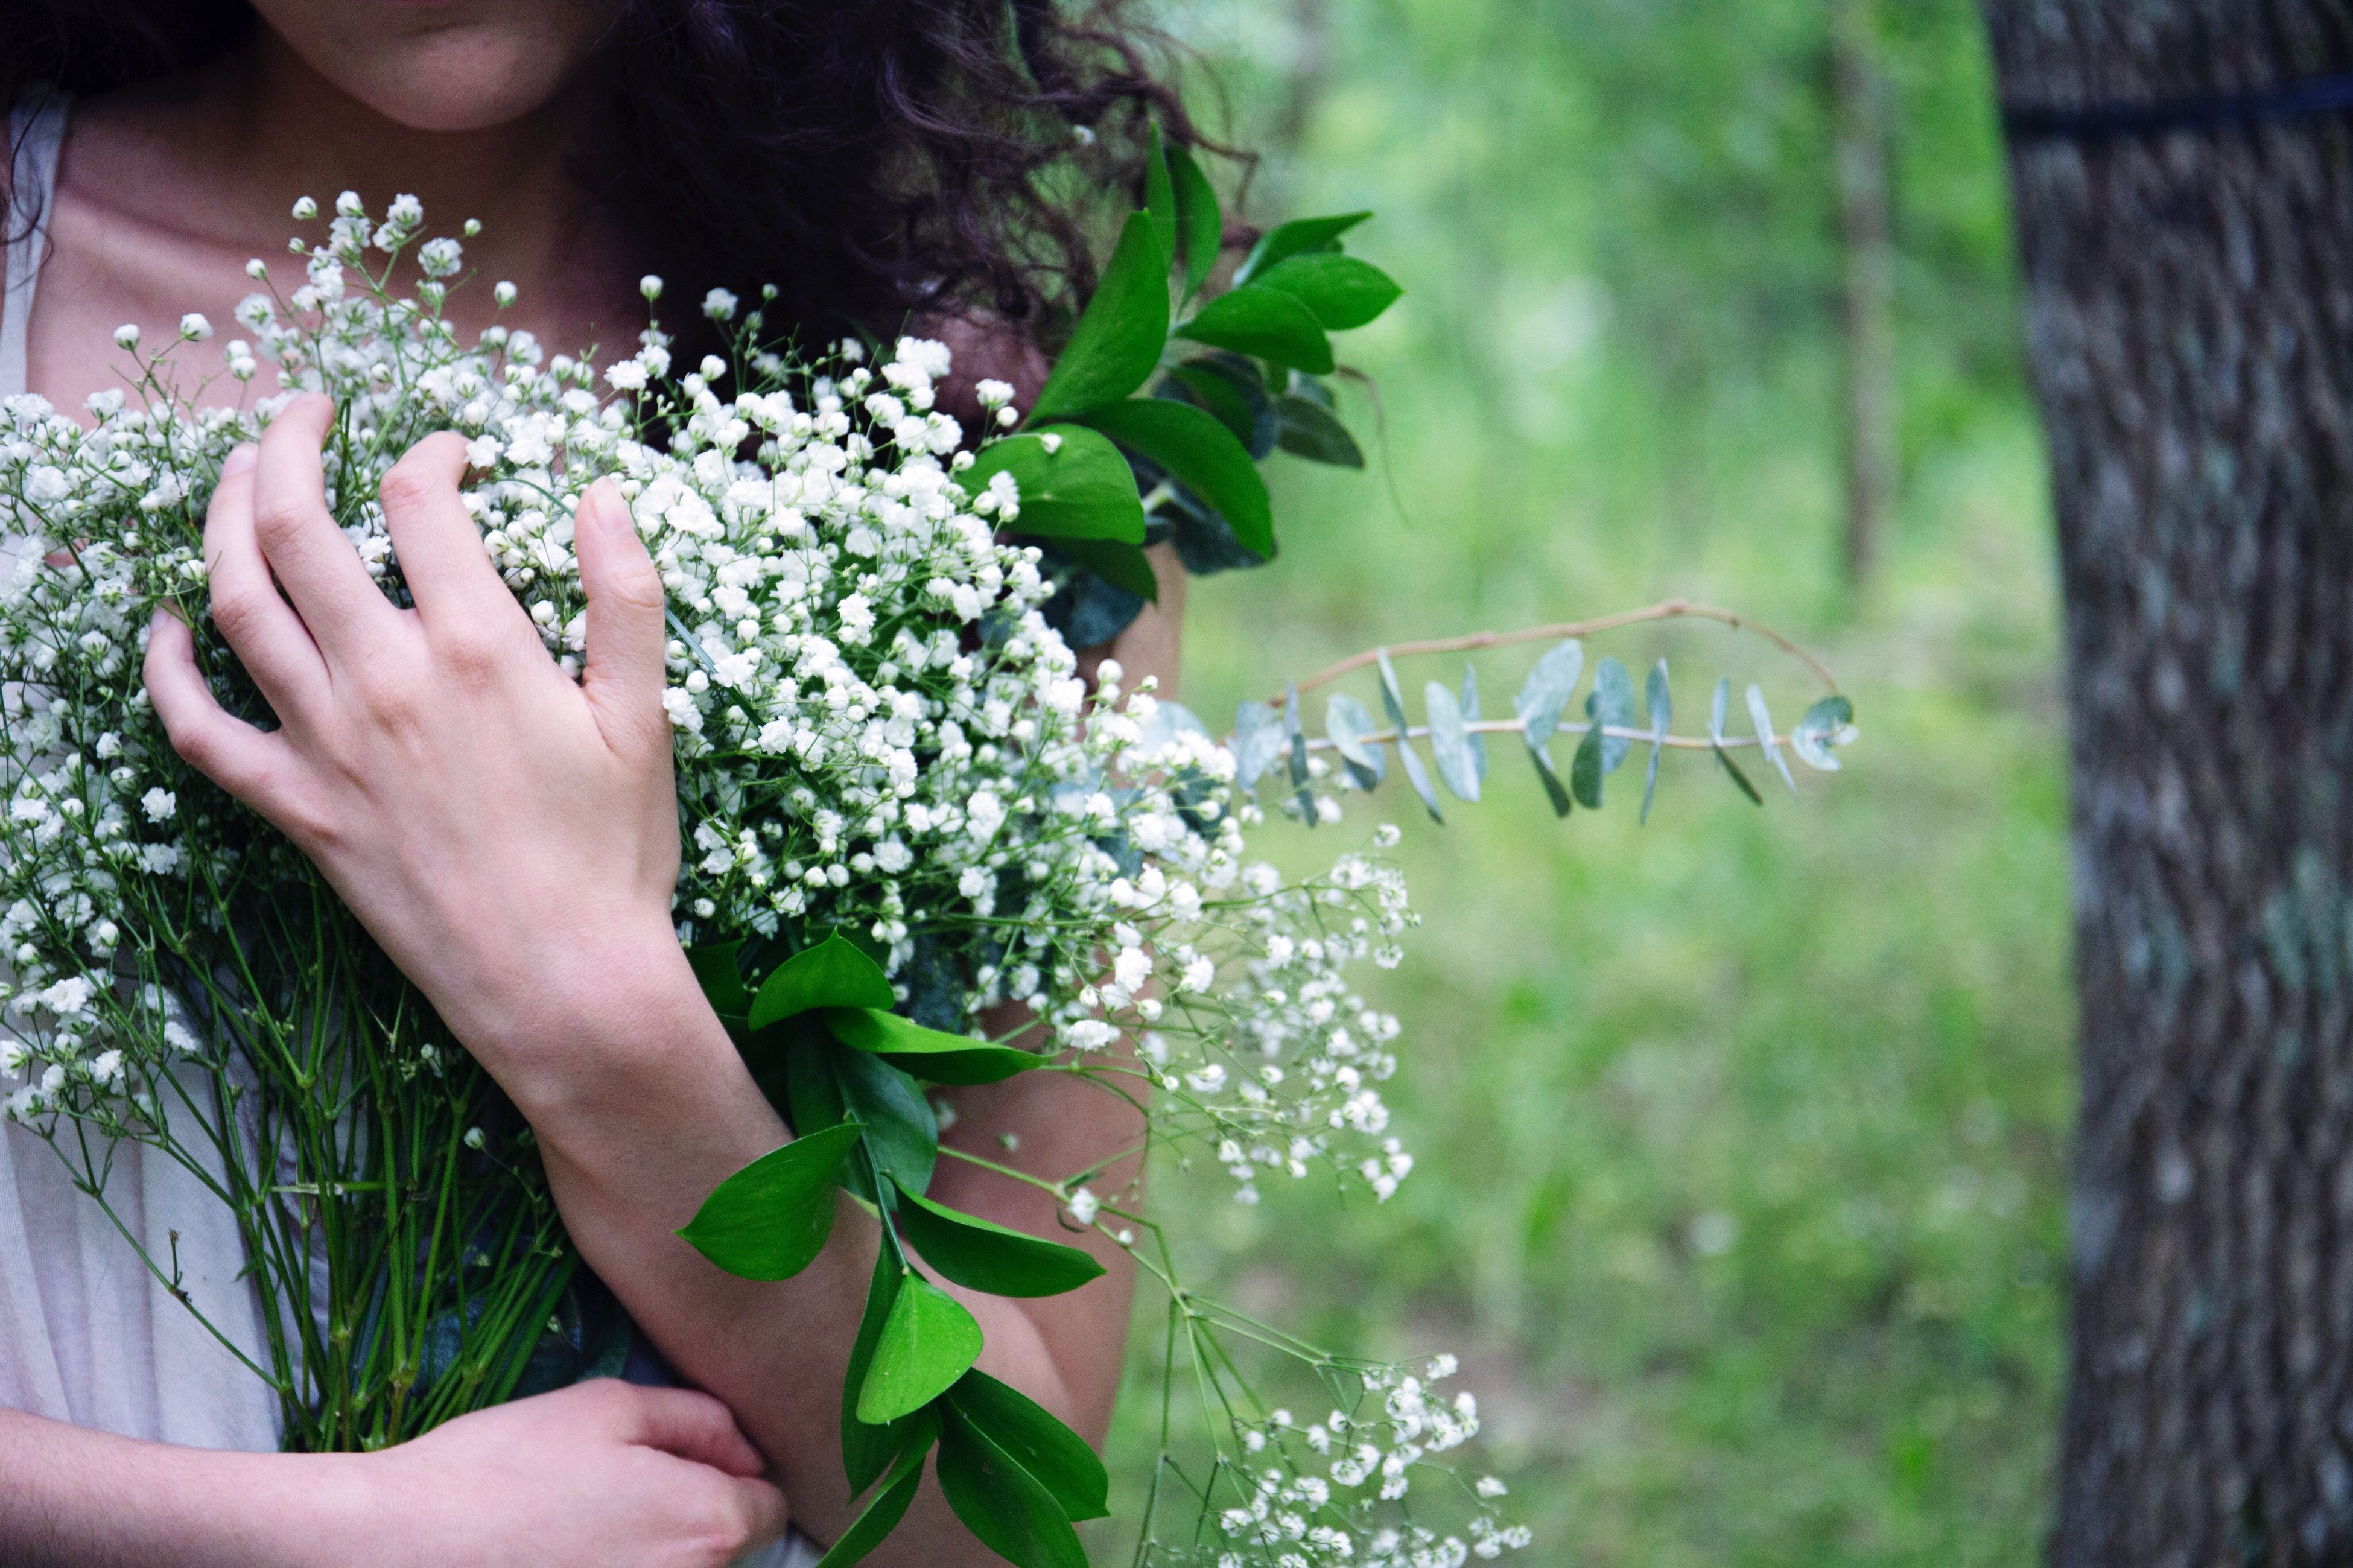 person, holding, part of, cropped, human finger, unrecognizable person, lifestyles, personal perspective, leisure activity, focus on foreground, freshness, close-up, flower, plant, green color, nature